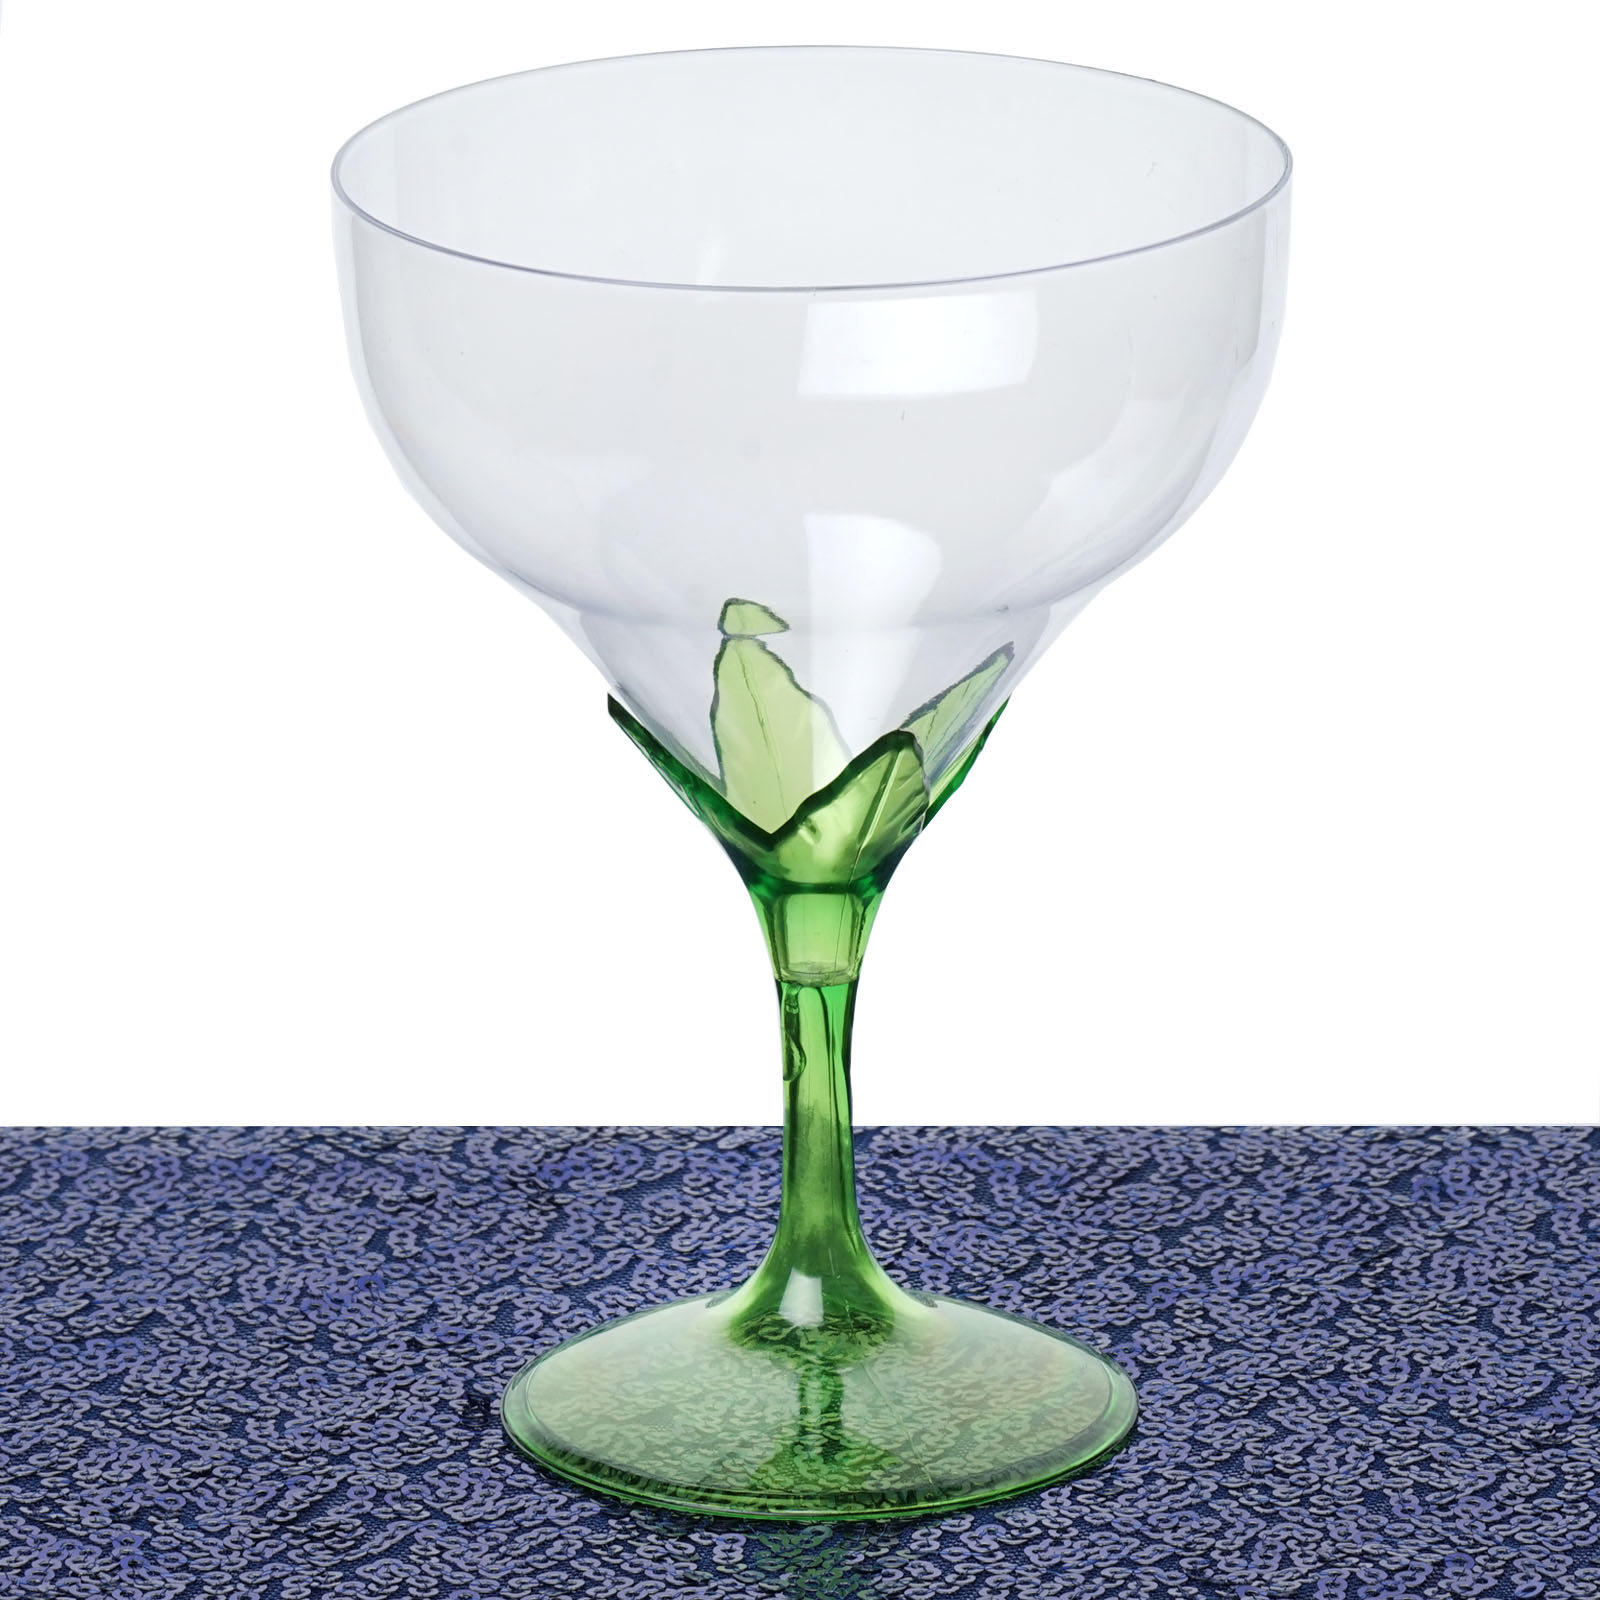 Efavormart 30 Pcs Disposable Clear Plastic  Champagne Goblet for Wedding Birthday Party Banquet Events Cocktail Cups